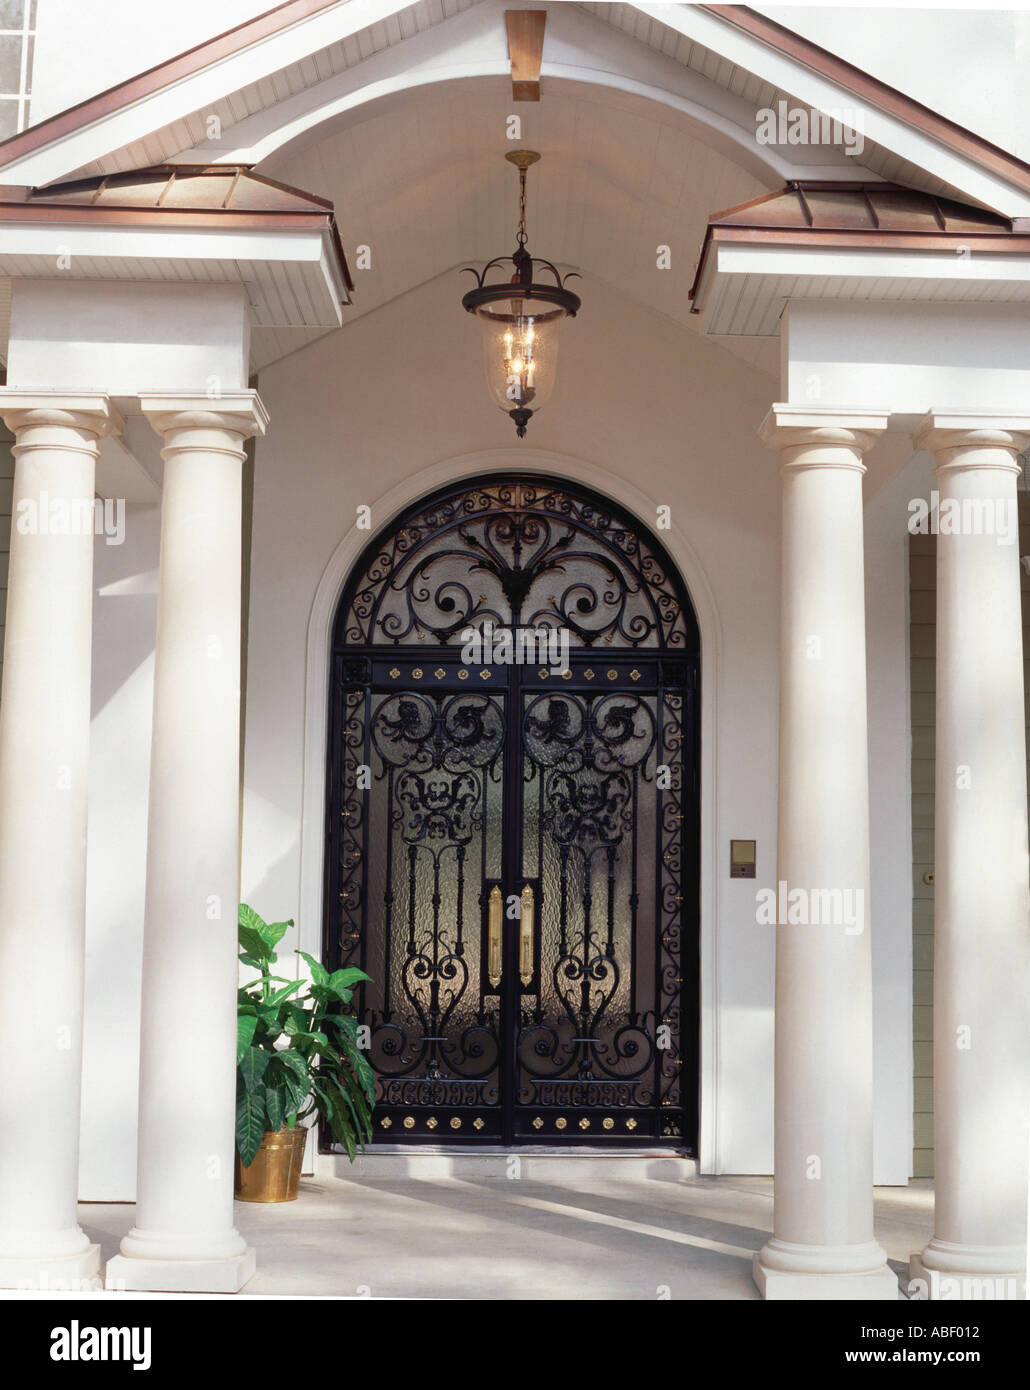 Custom wrought iron front doors installed on residential home custom wrought iron front doors installed on residential home rubansaba